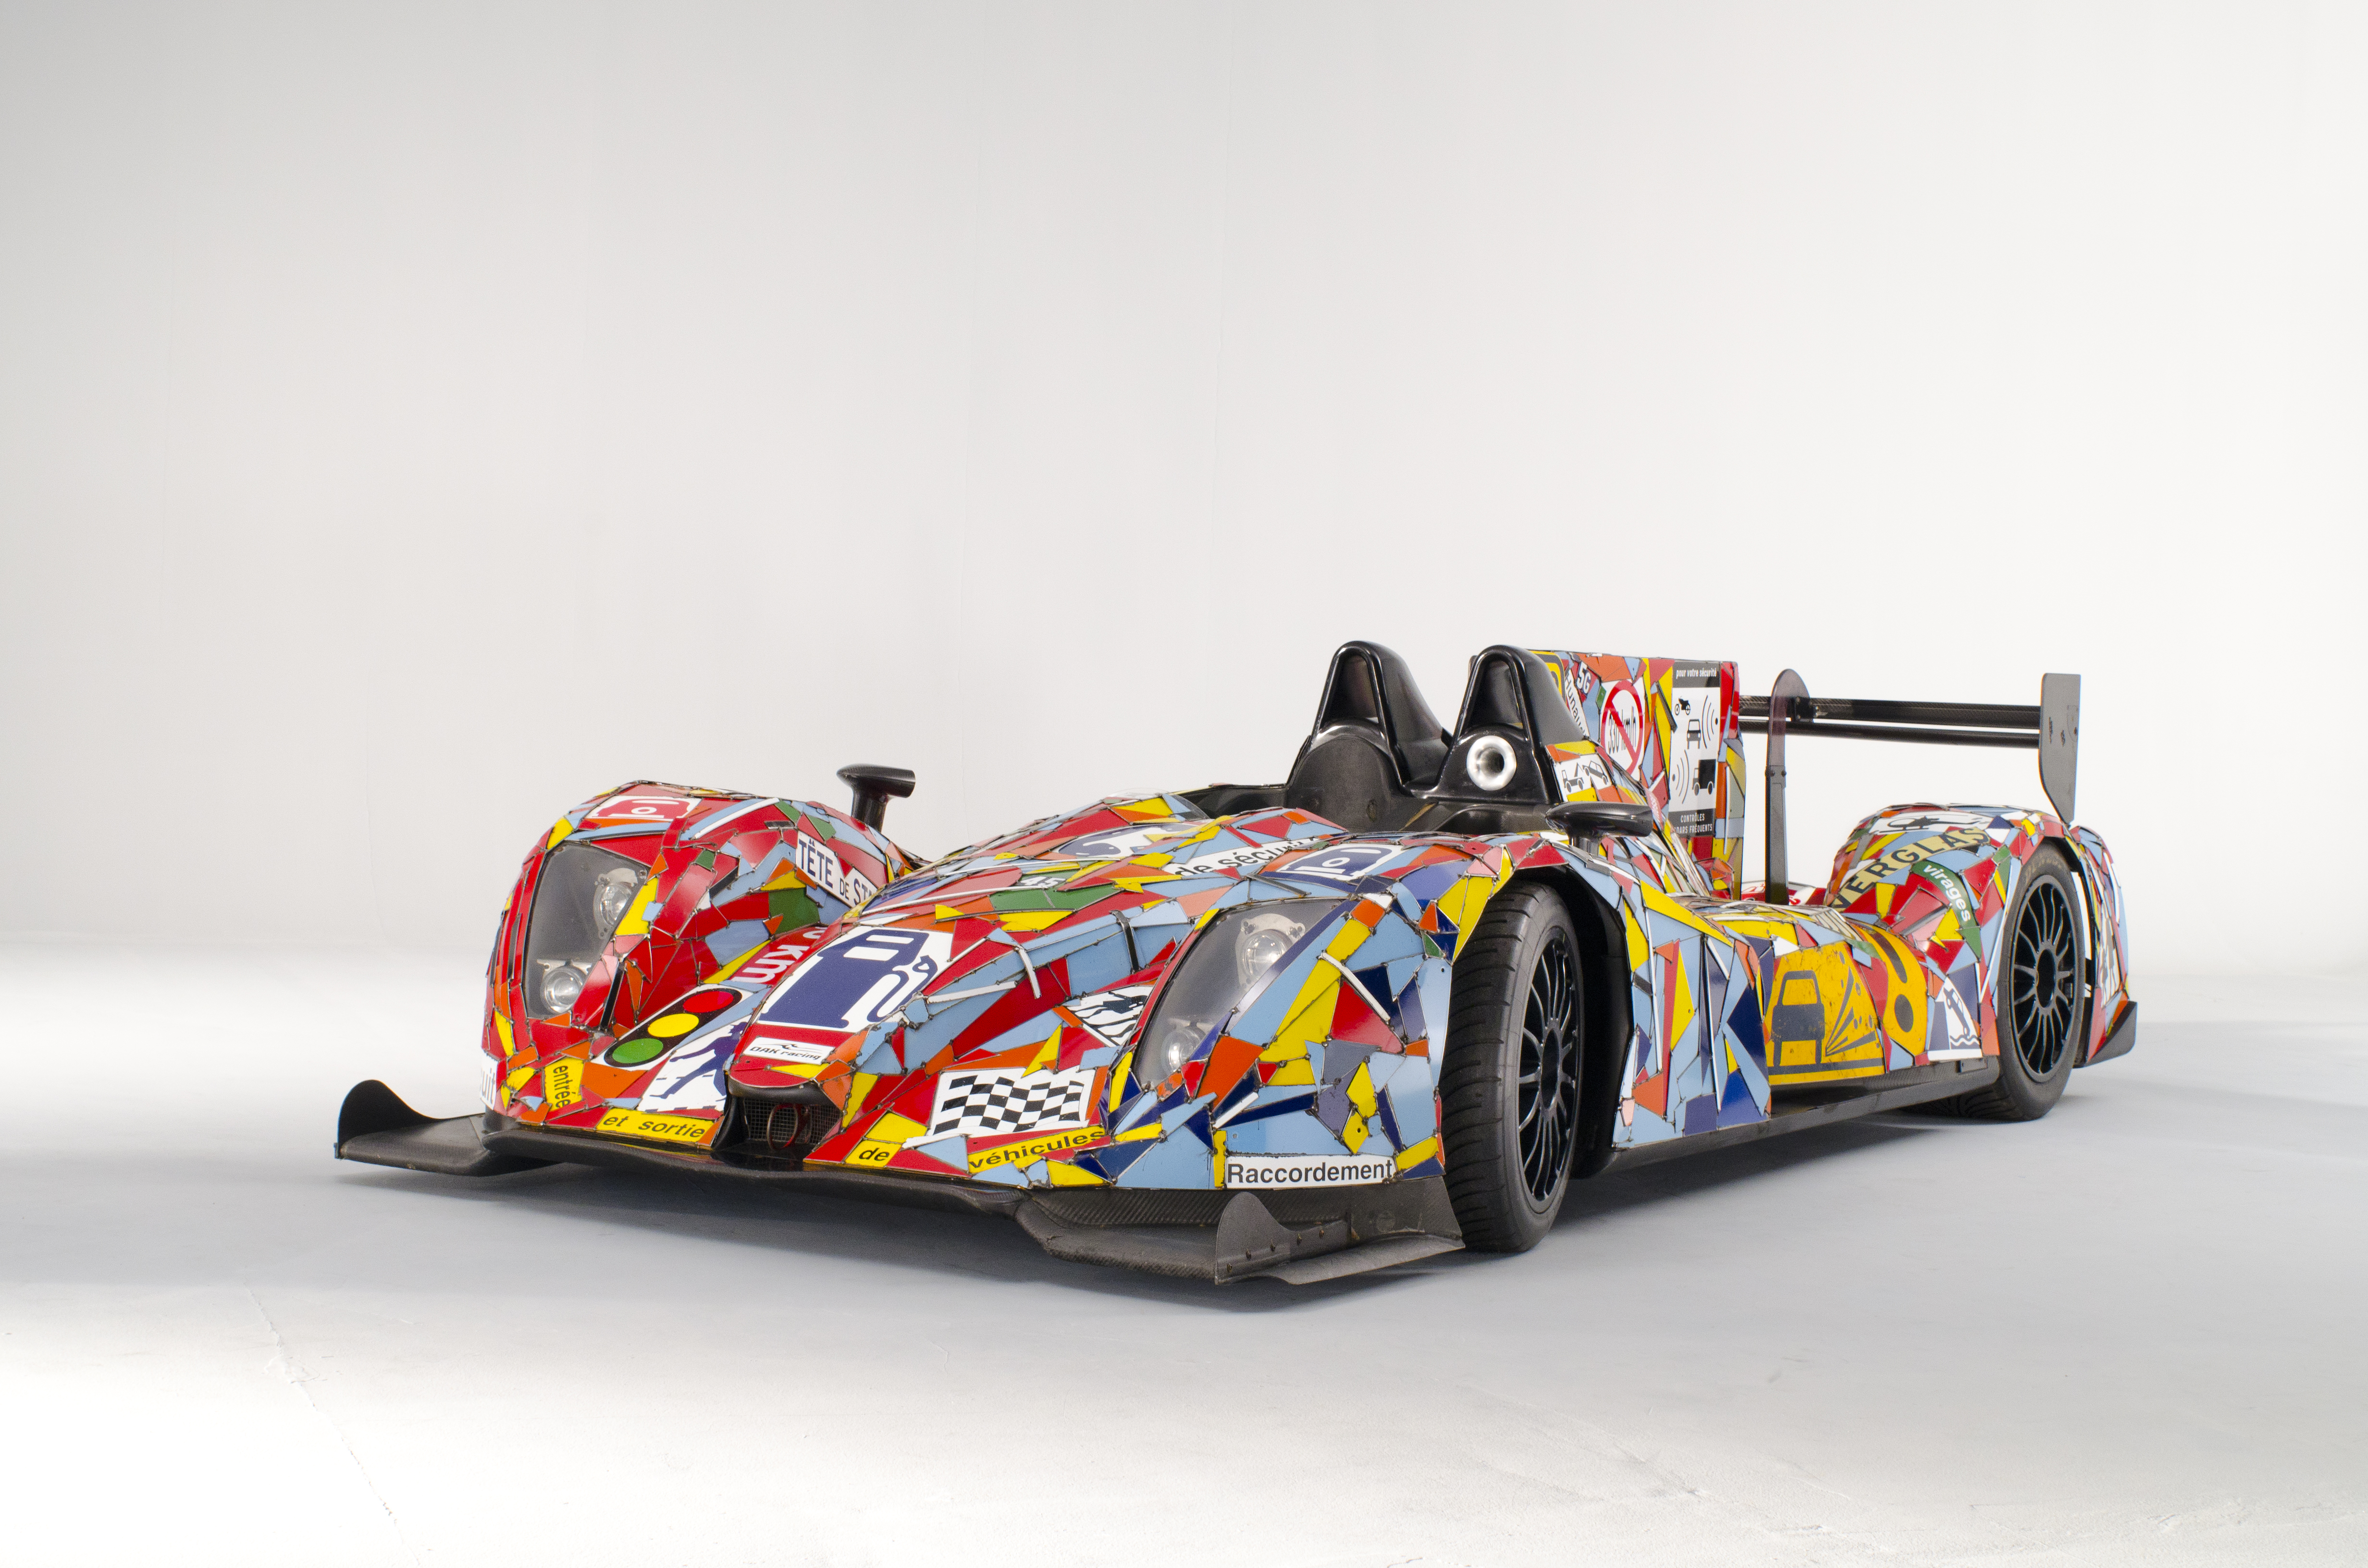 La Art Car de OAK Racing par Fernando Costa